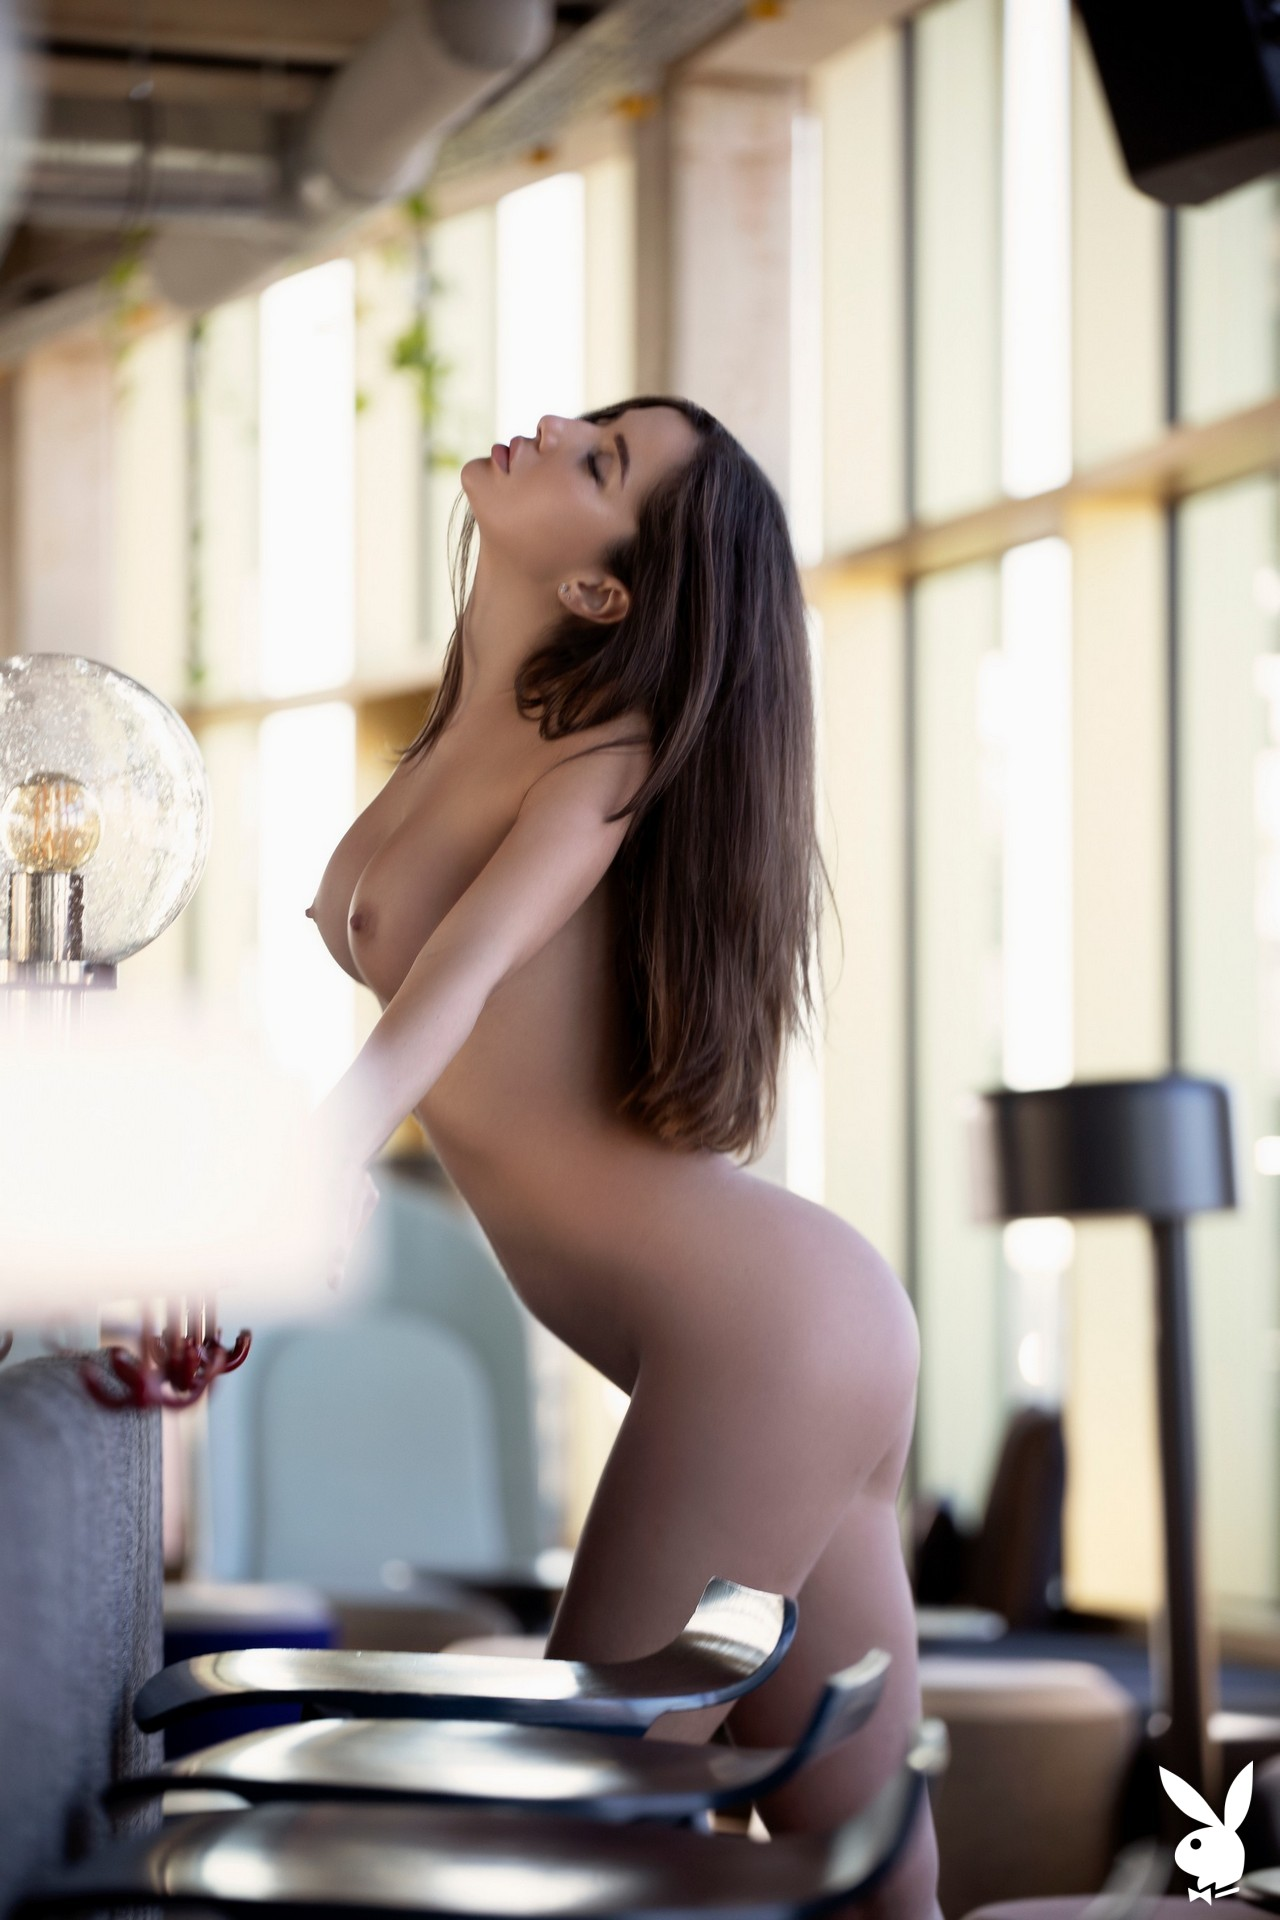 Marina Nelson In Modern Space Playboy Plus (21)